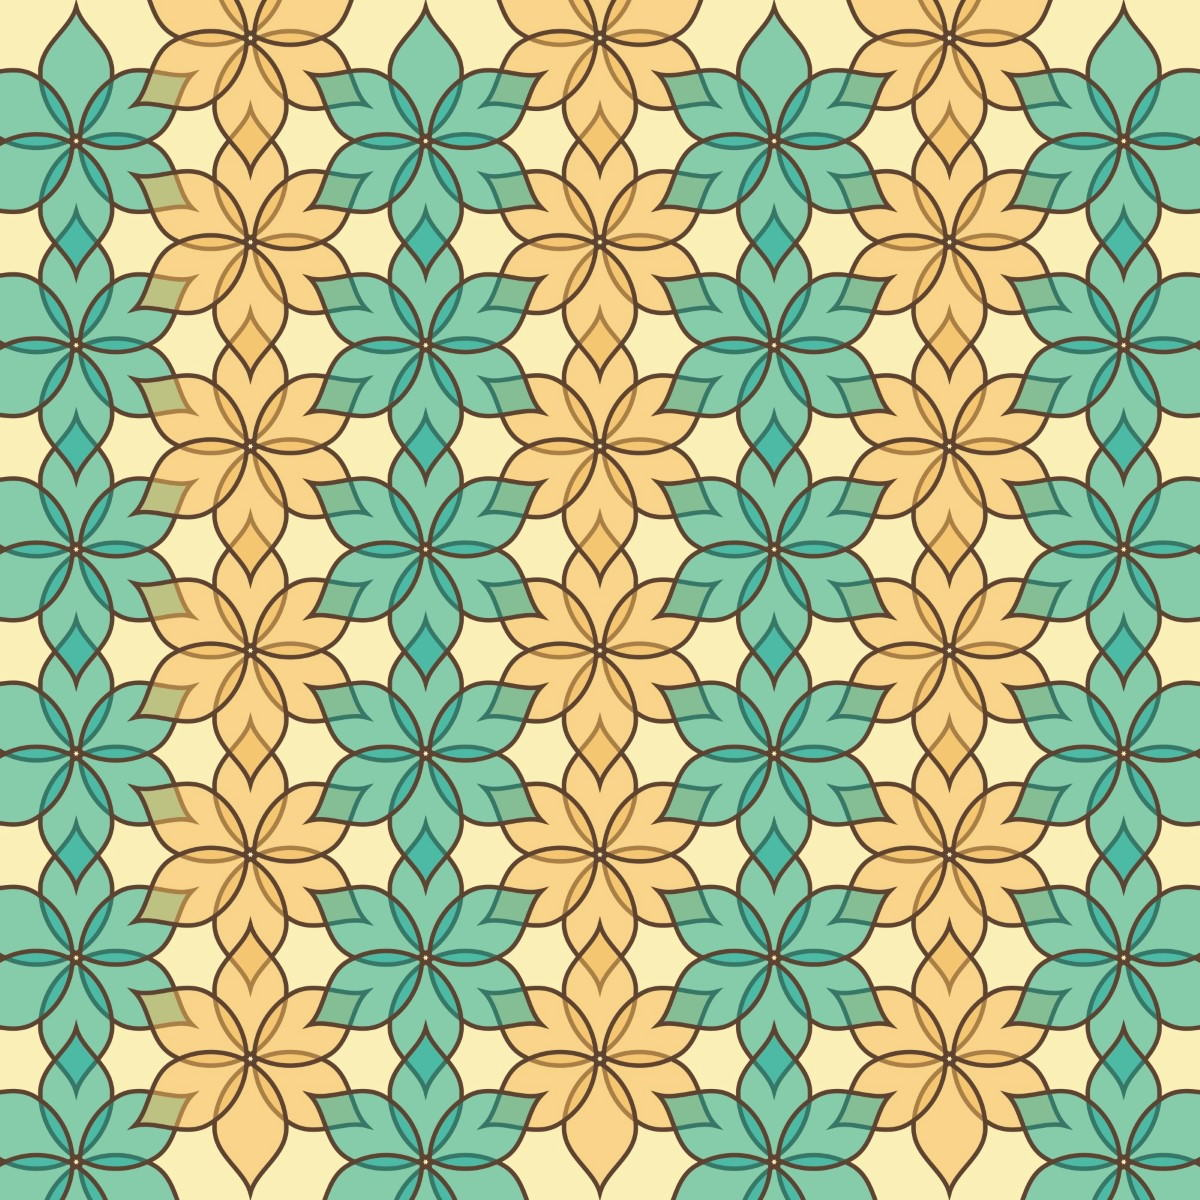 20+ Vintage Floral Patterns | Photoshop Patterns | FreeCreatives